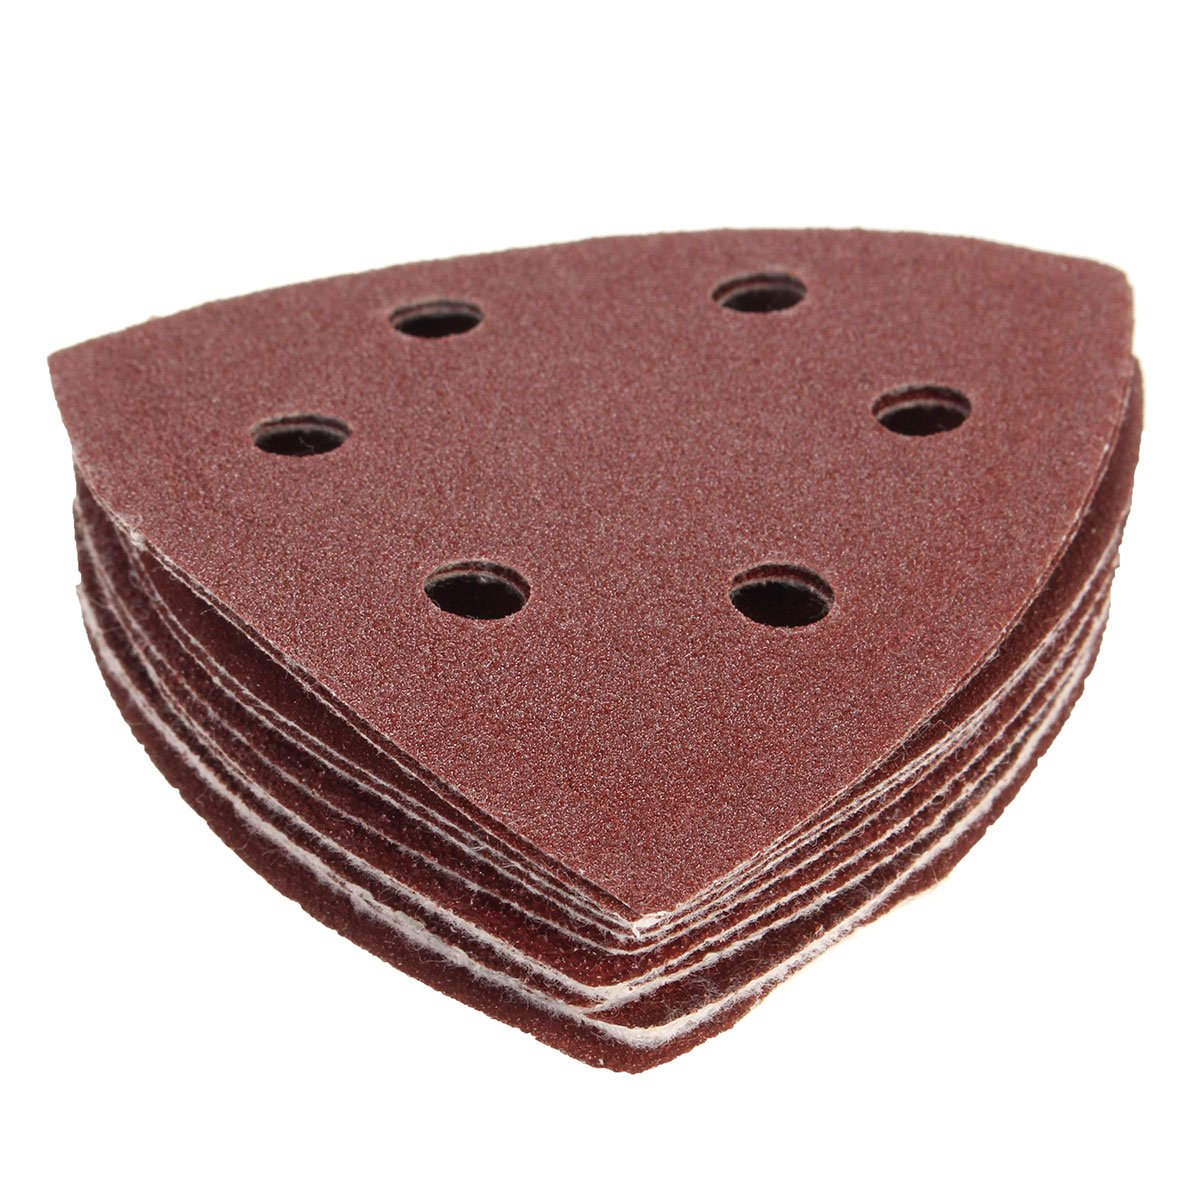 KING DO WAY Pack Of 10 90mm Sanding Sheets Paper Triangle Mouse Detail Sandpaper Pads 40 60 80 100 120 Grit